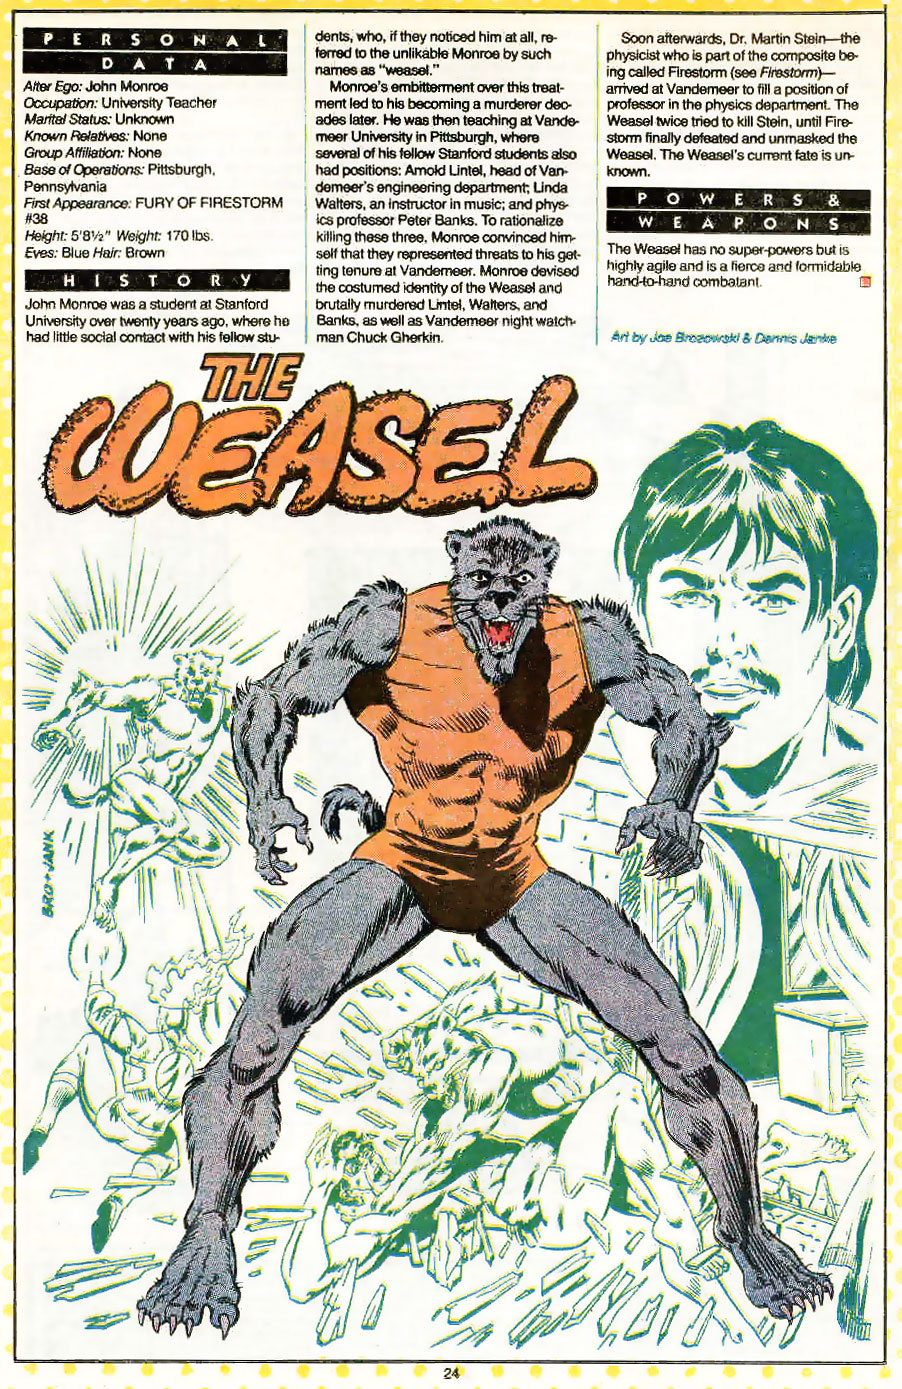 Who's Who entry for The Weasel by Joe Brozowski and Dennis Janke